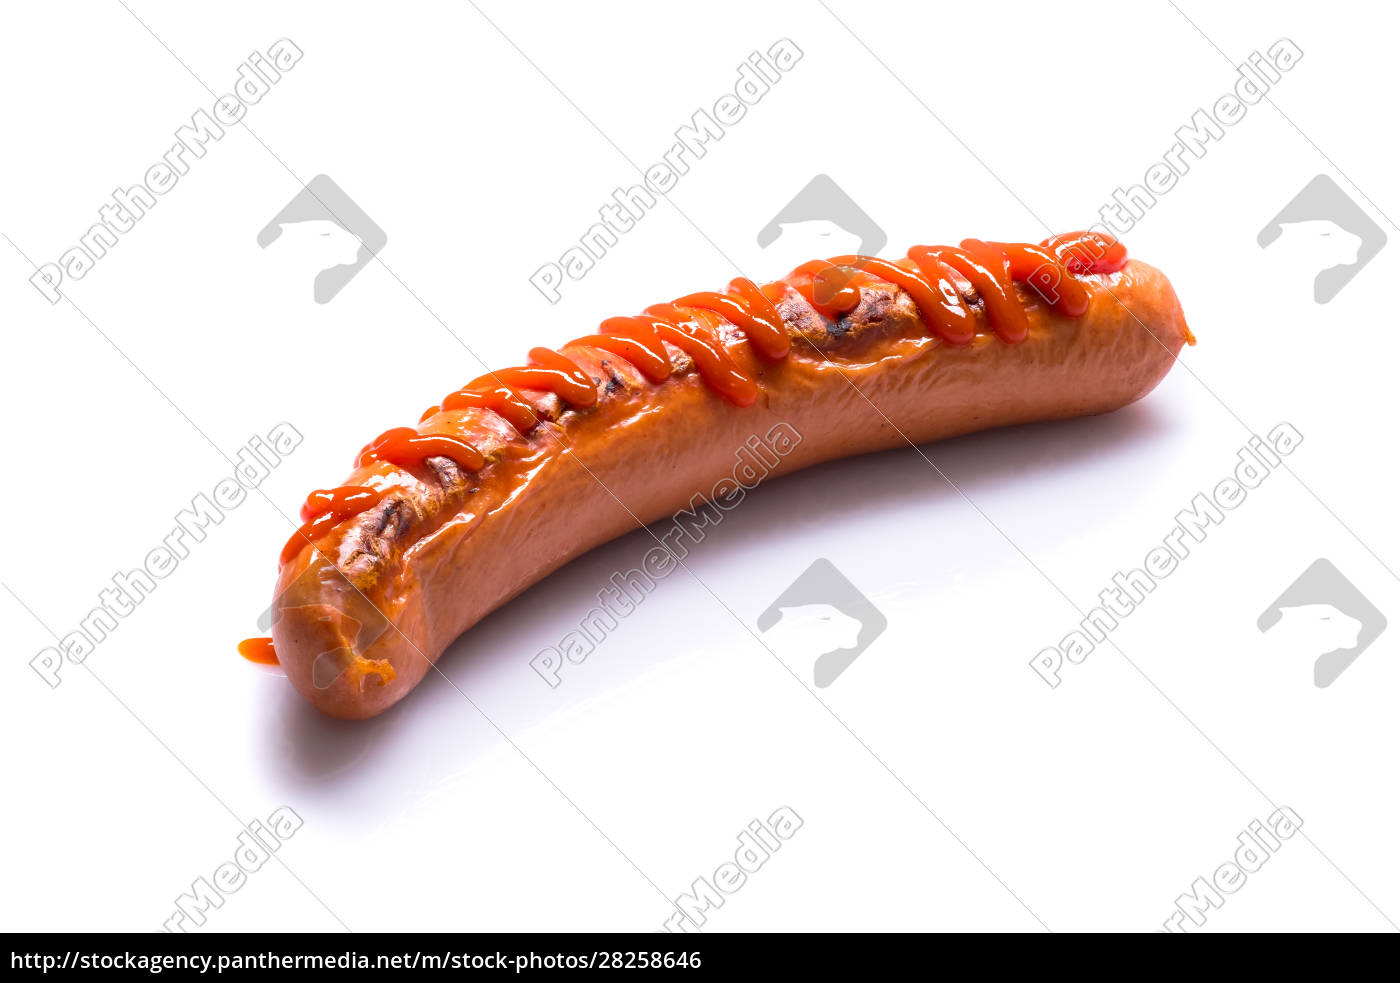 fried, sausage, with, ketchup - 28258646